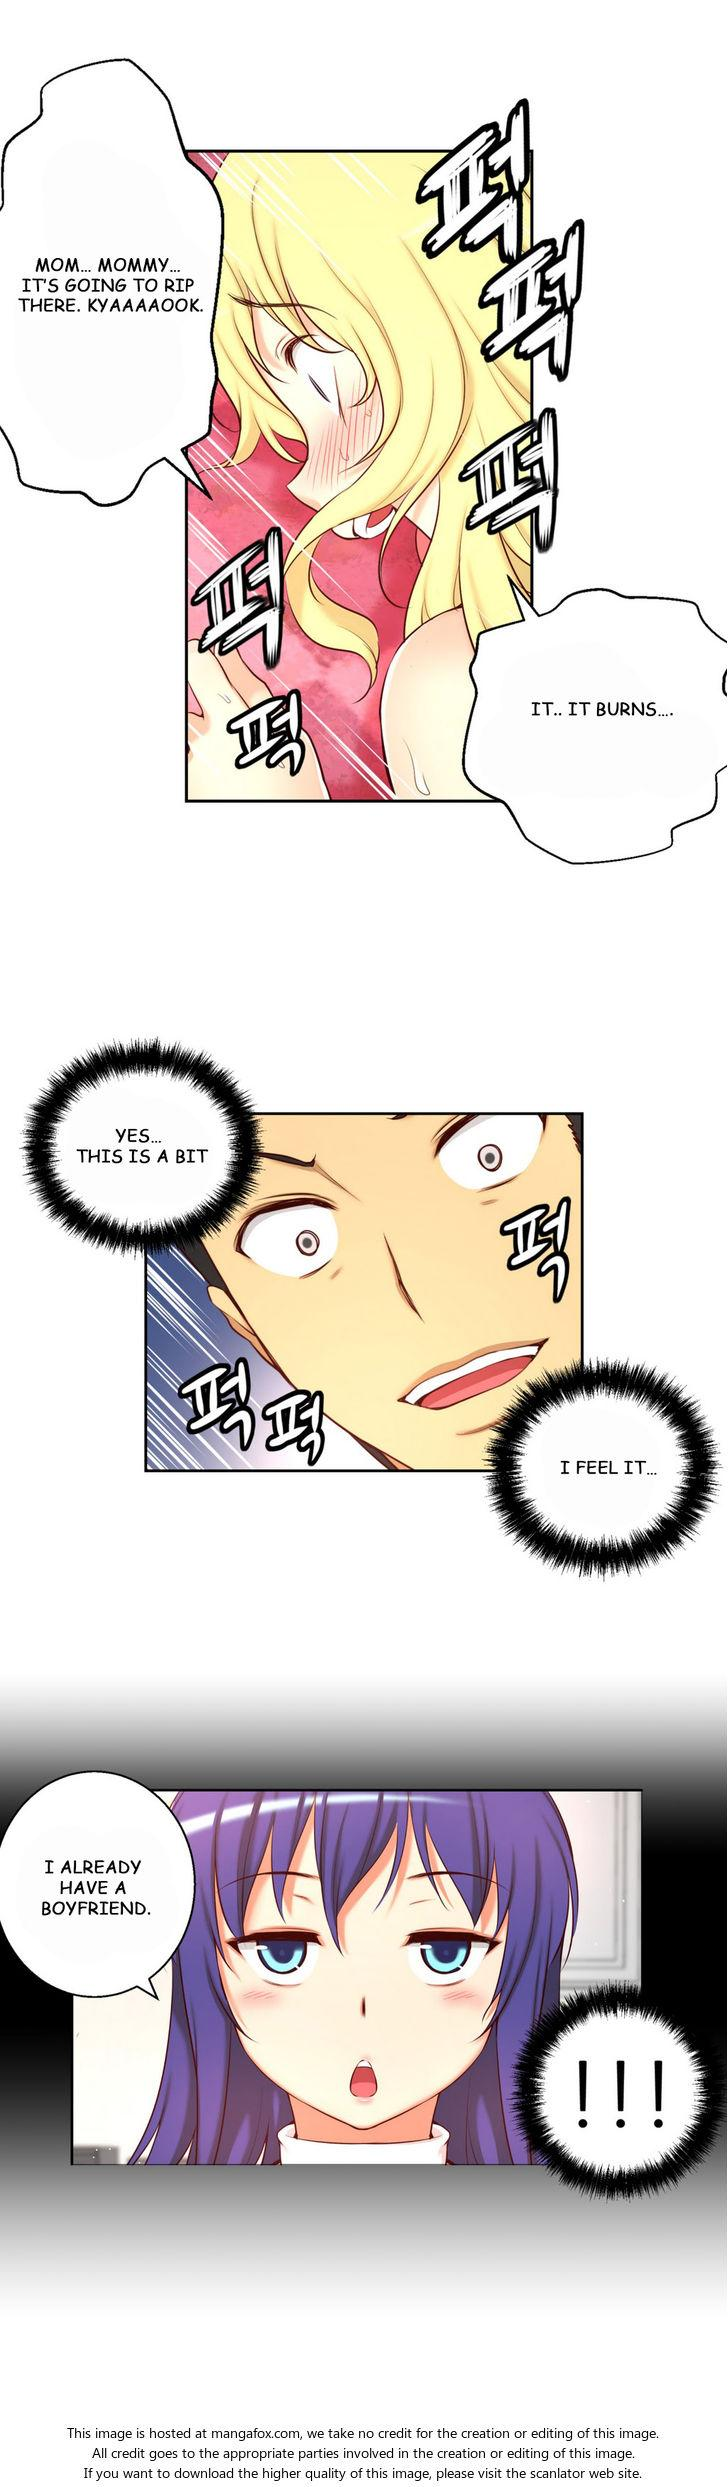 [Donggul Gom] She is Young (English) Part 1/2 649